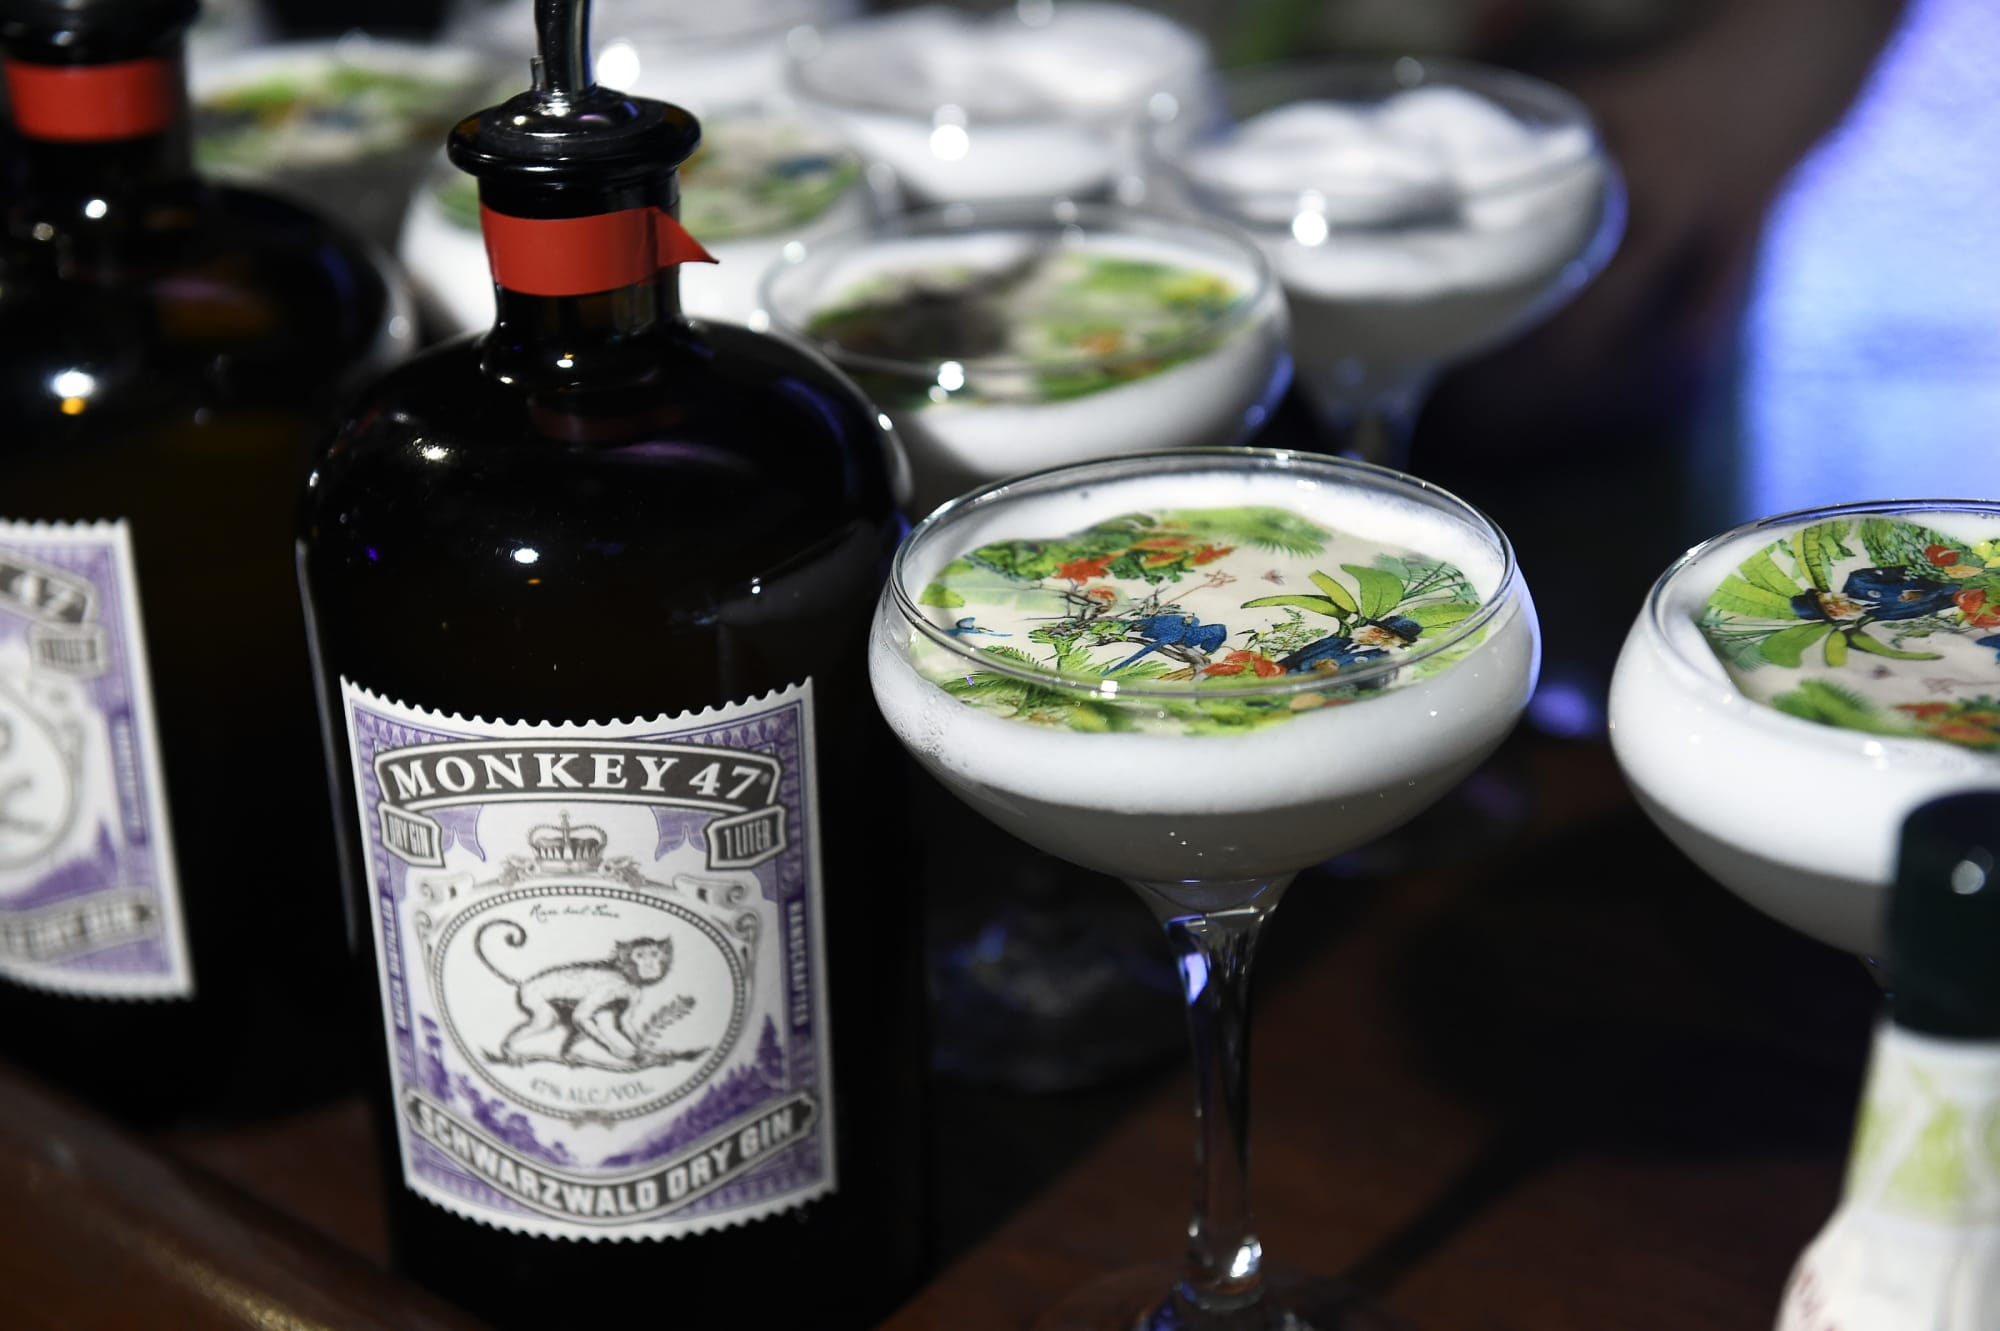 Monkey 47 Gin – Brighten Up The New Year With These Flavorful Cocktails photo